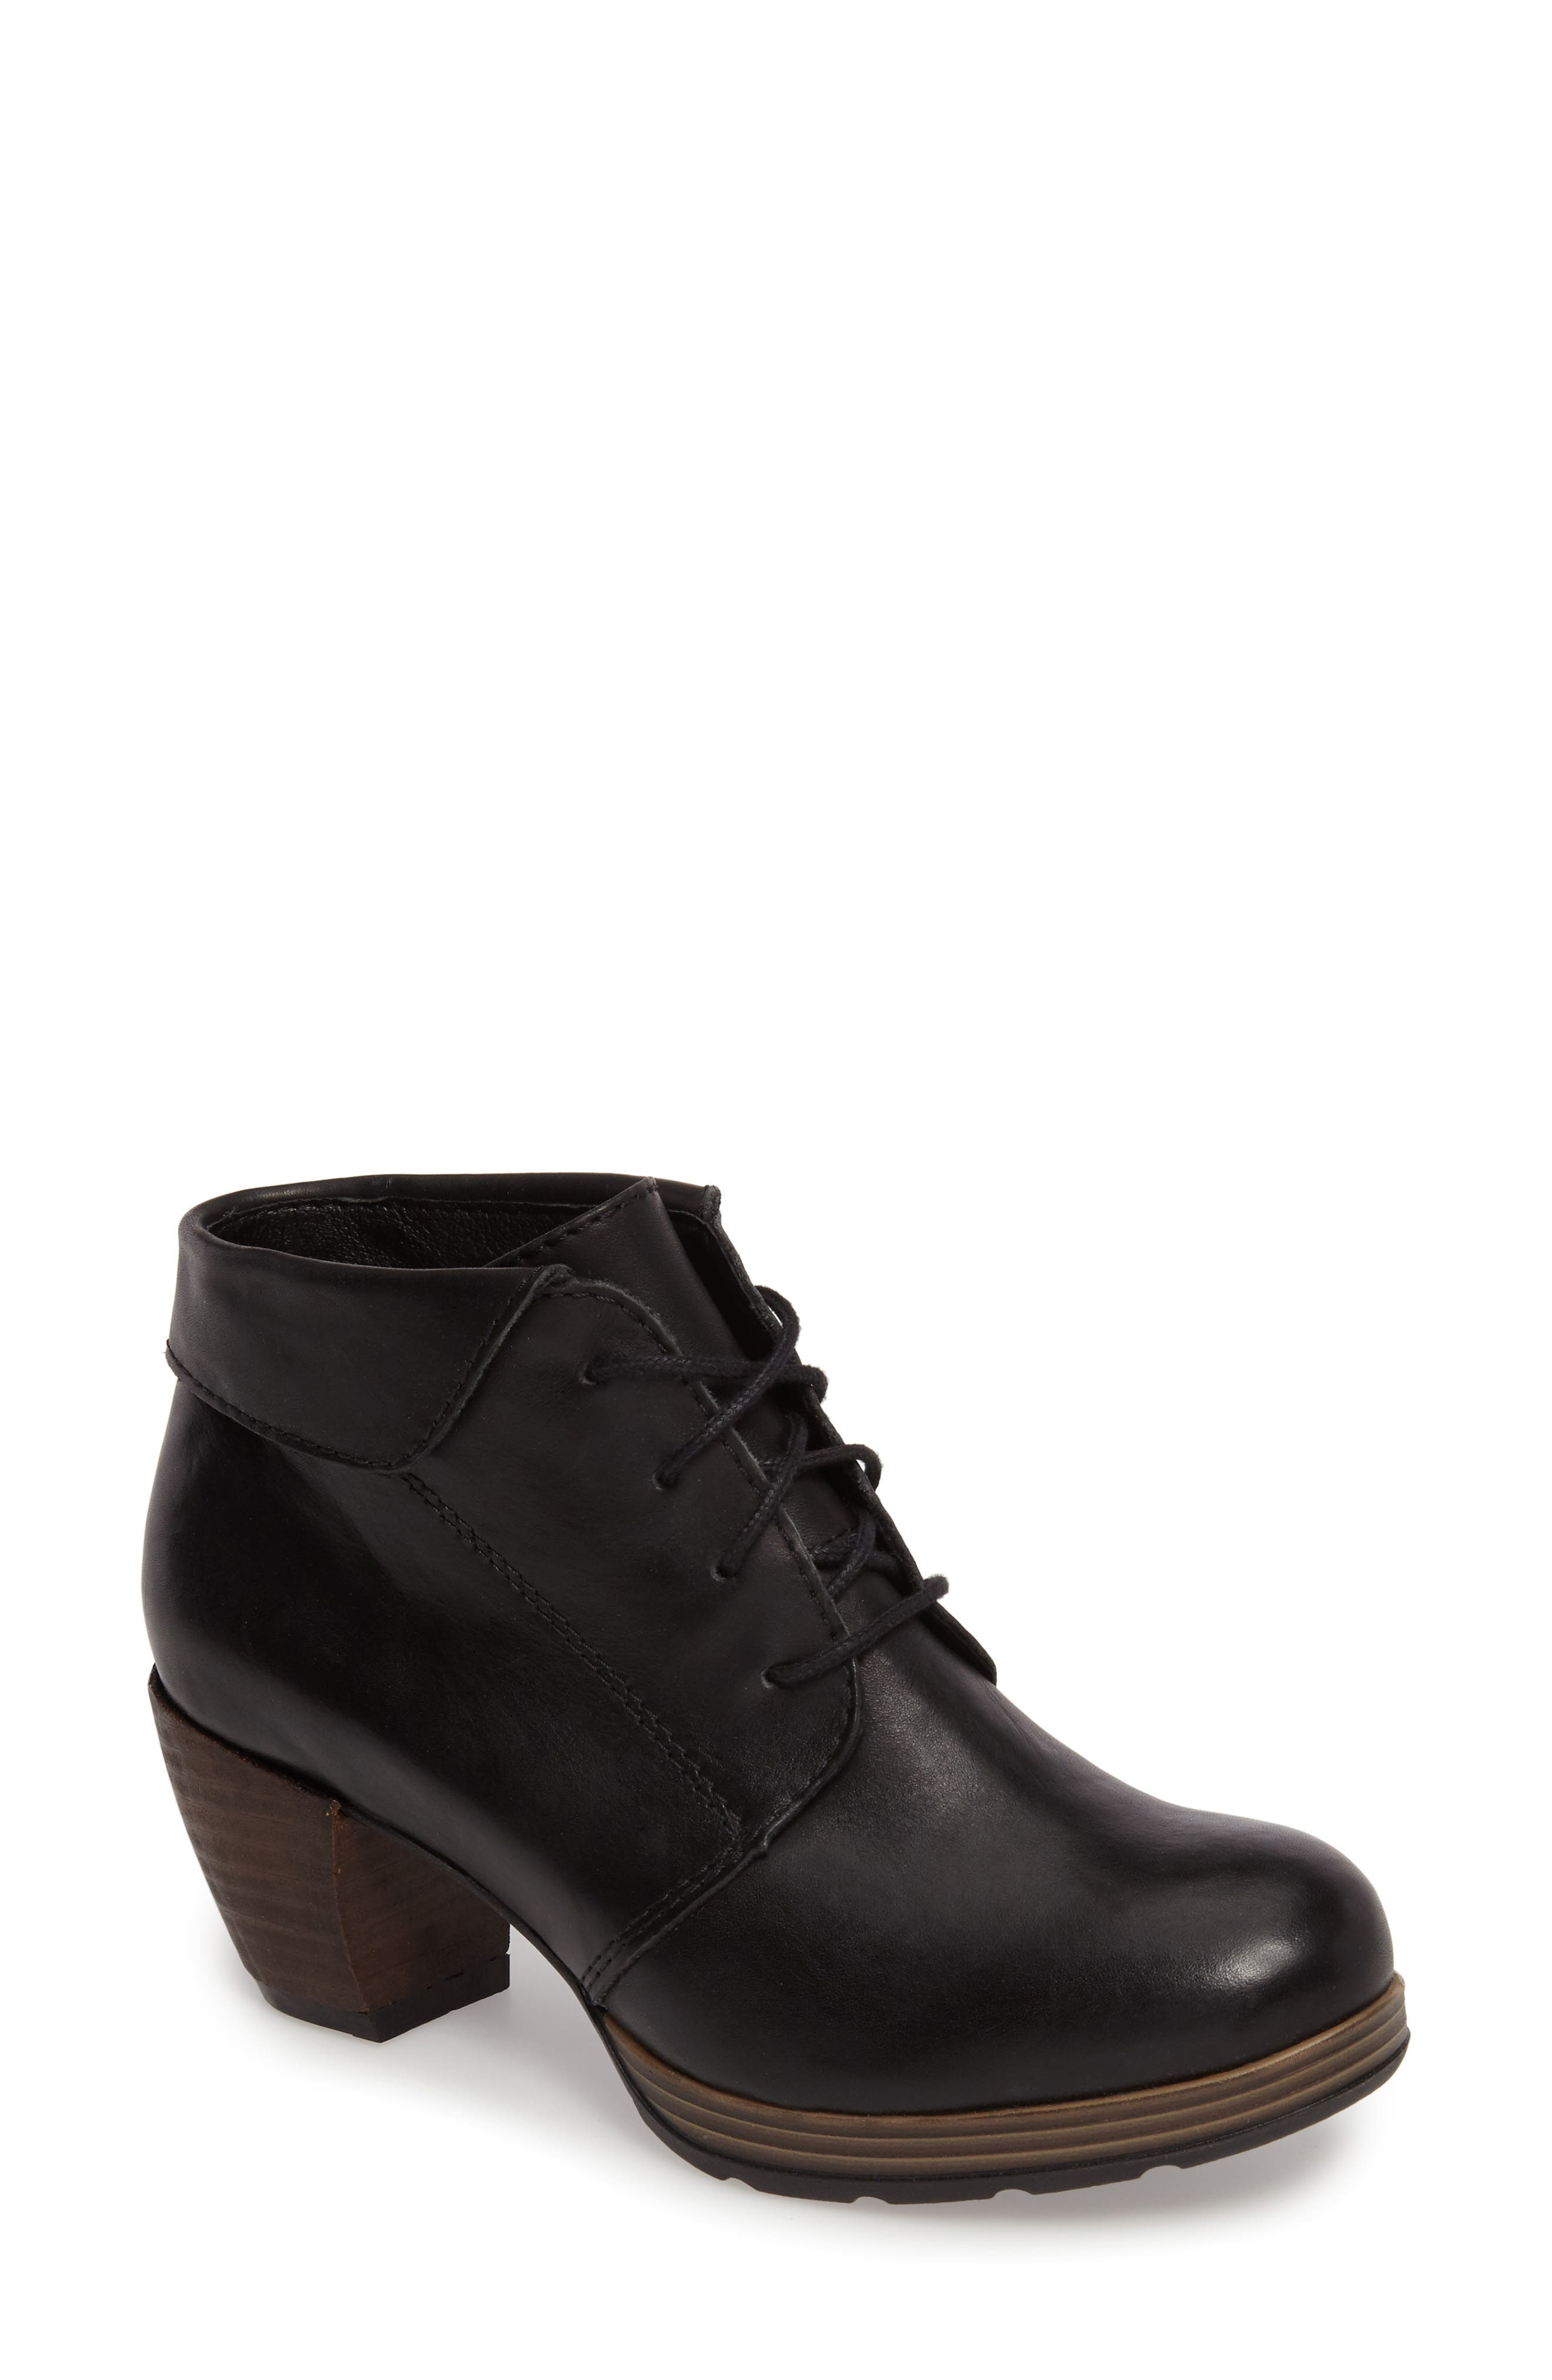 Wolky Women's Jacquerie Lace-Up Bootie